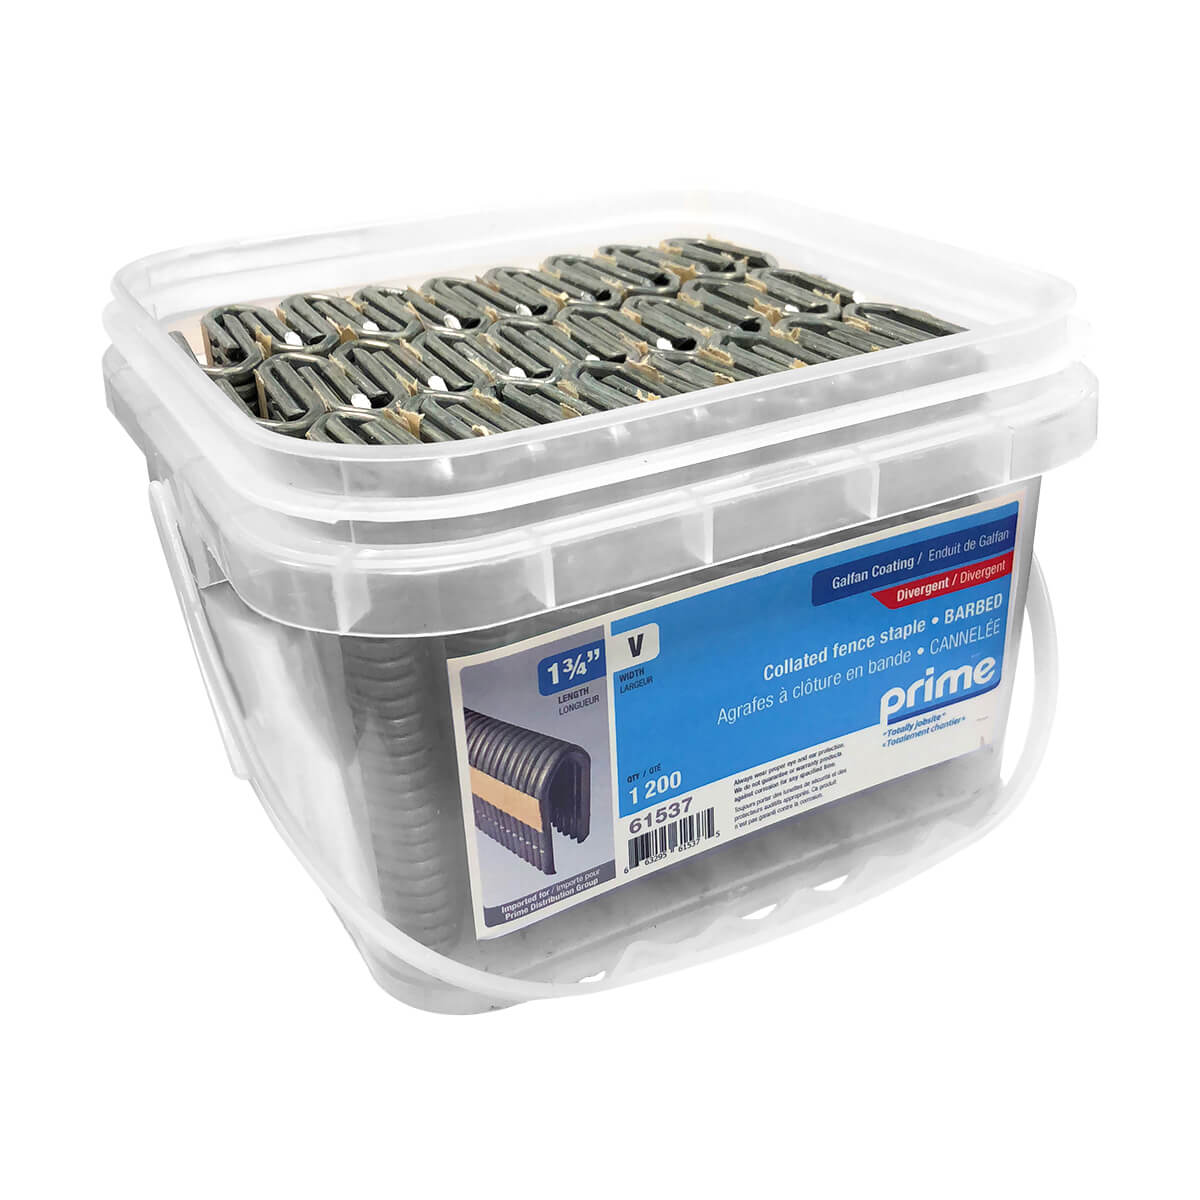 Prime Collated Fencing Staple - 1-3/4-in 9 GA - 1200 pack